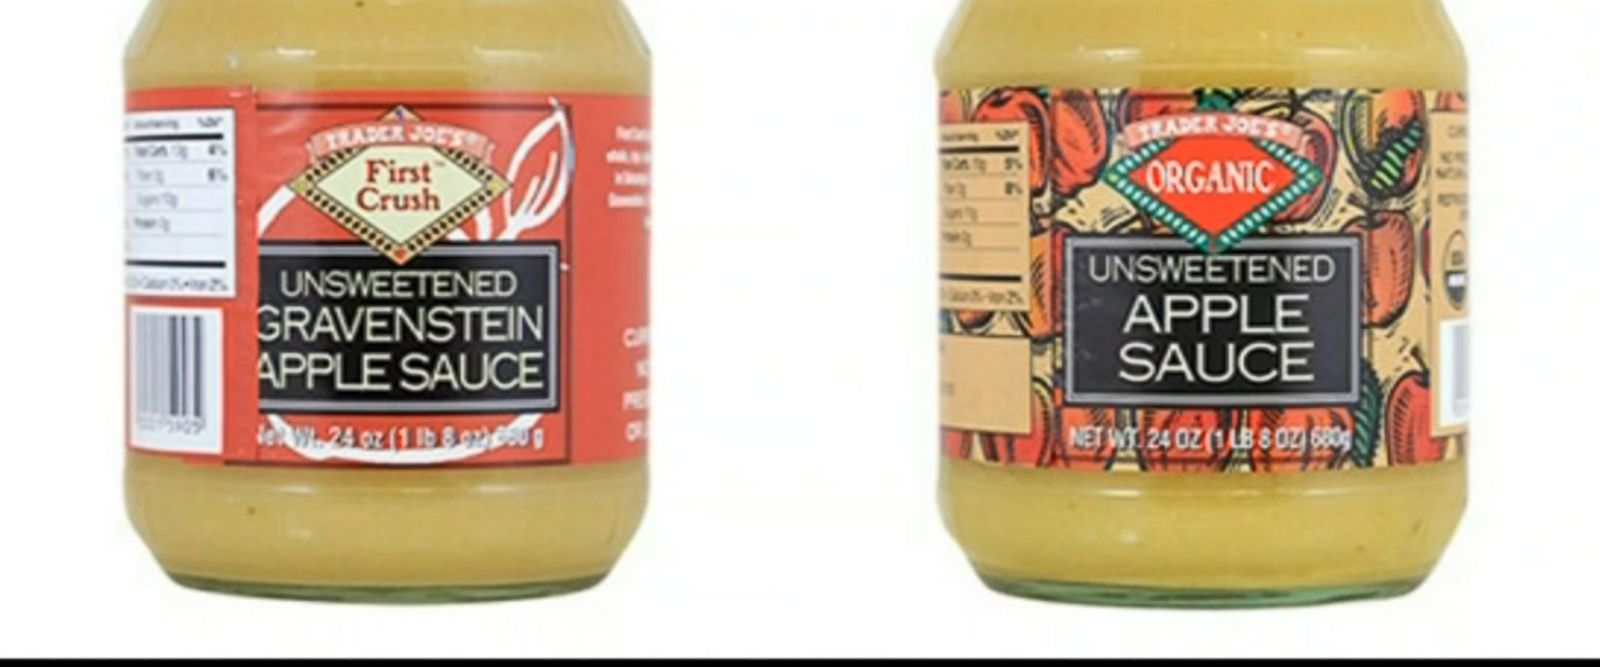 "It said the recall affected all codes of Trader Joe's First Crush Unsweetened Gravenstein Apple Sauce through ""best before Aug. 8, 2018"" in all Trader Joe's stores."